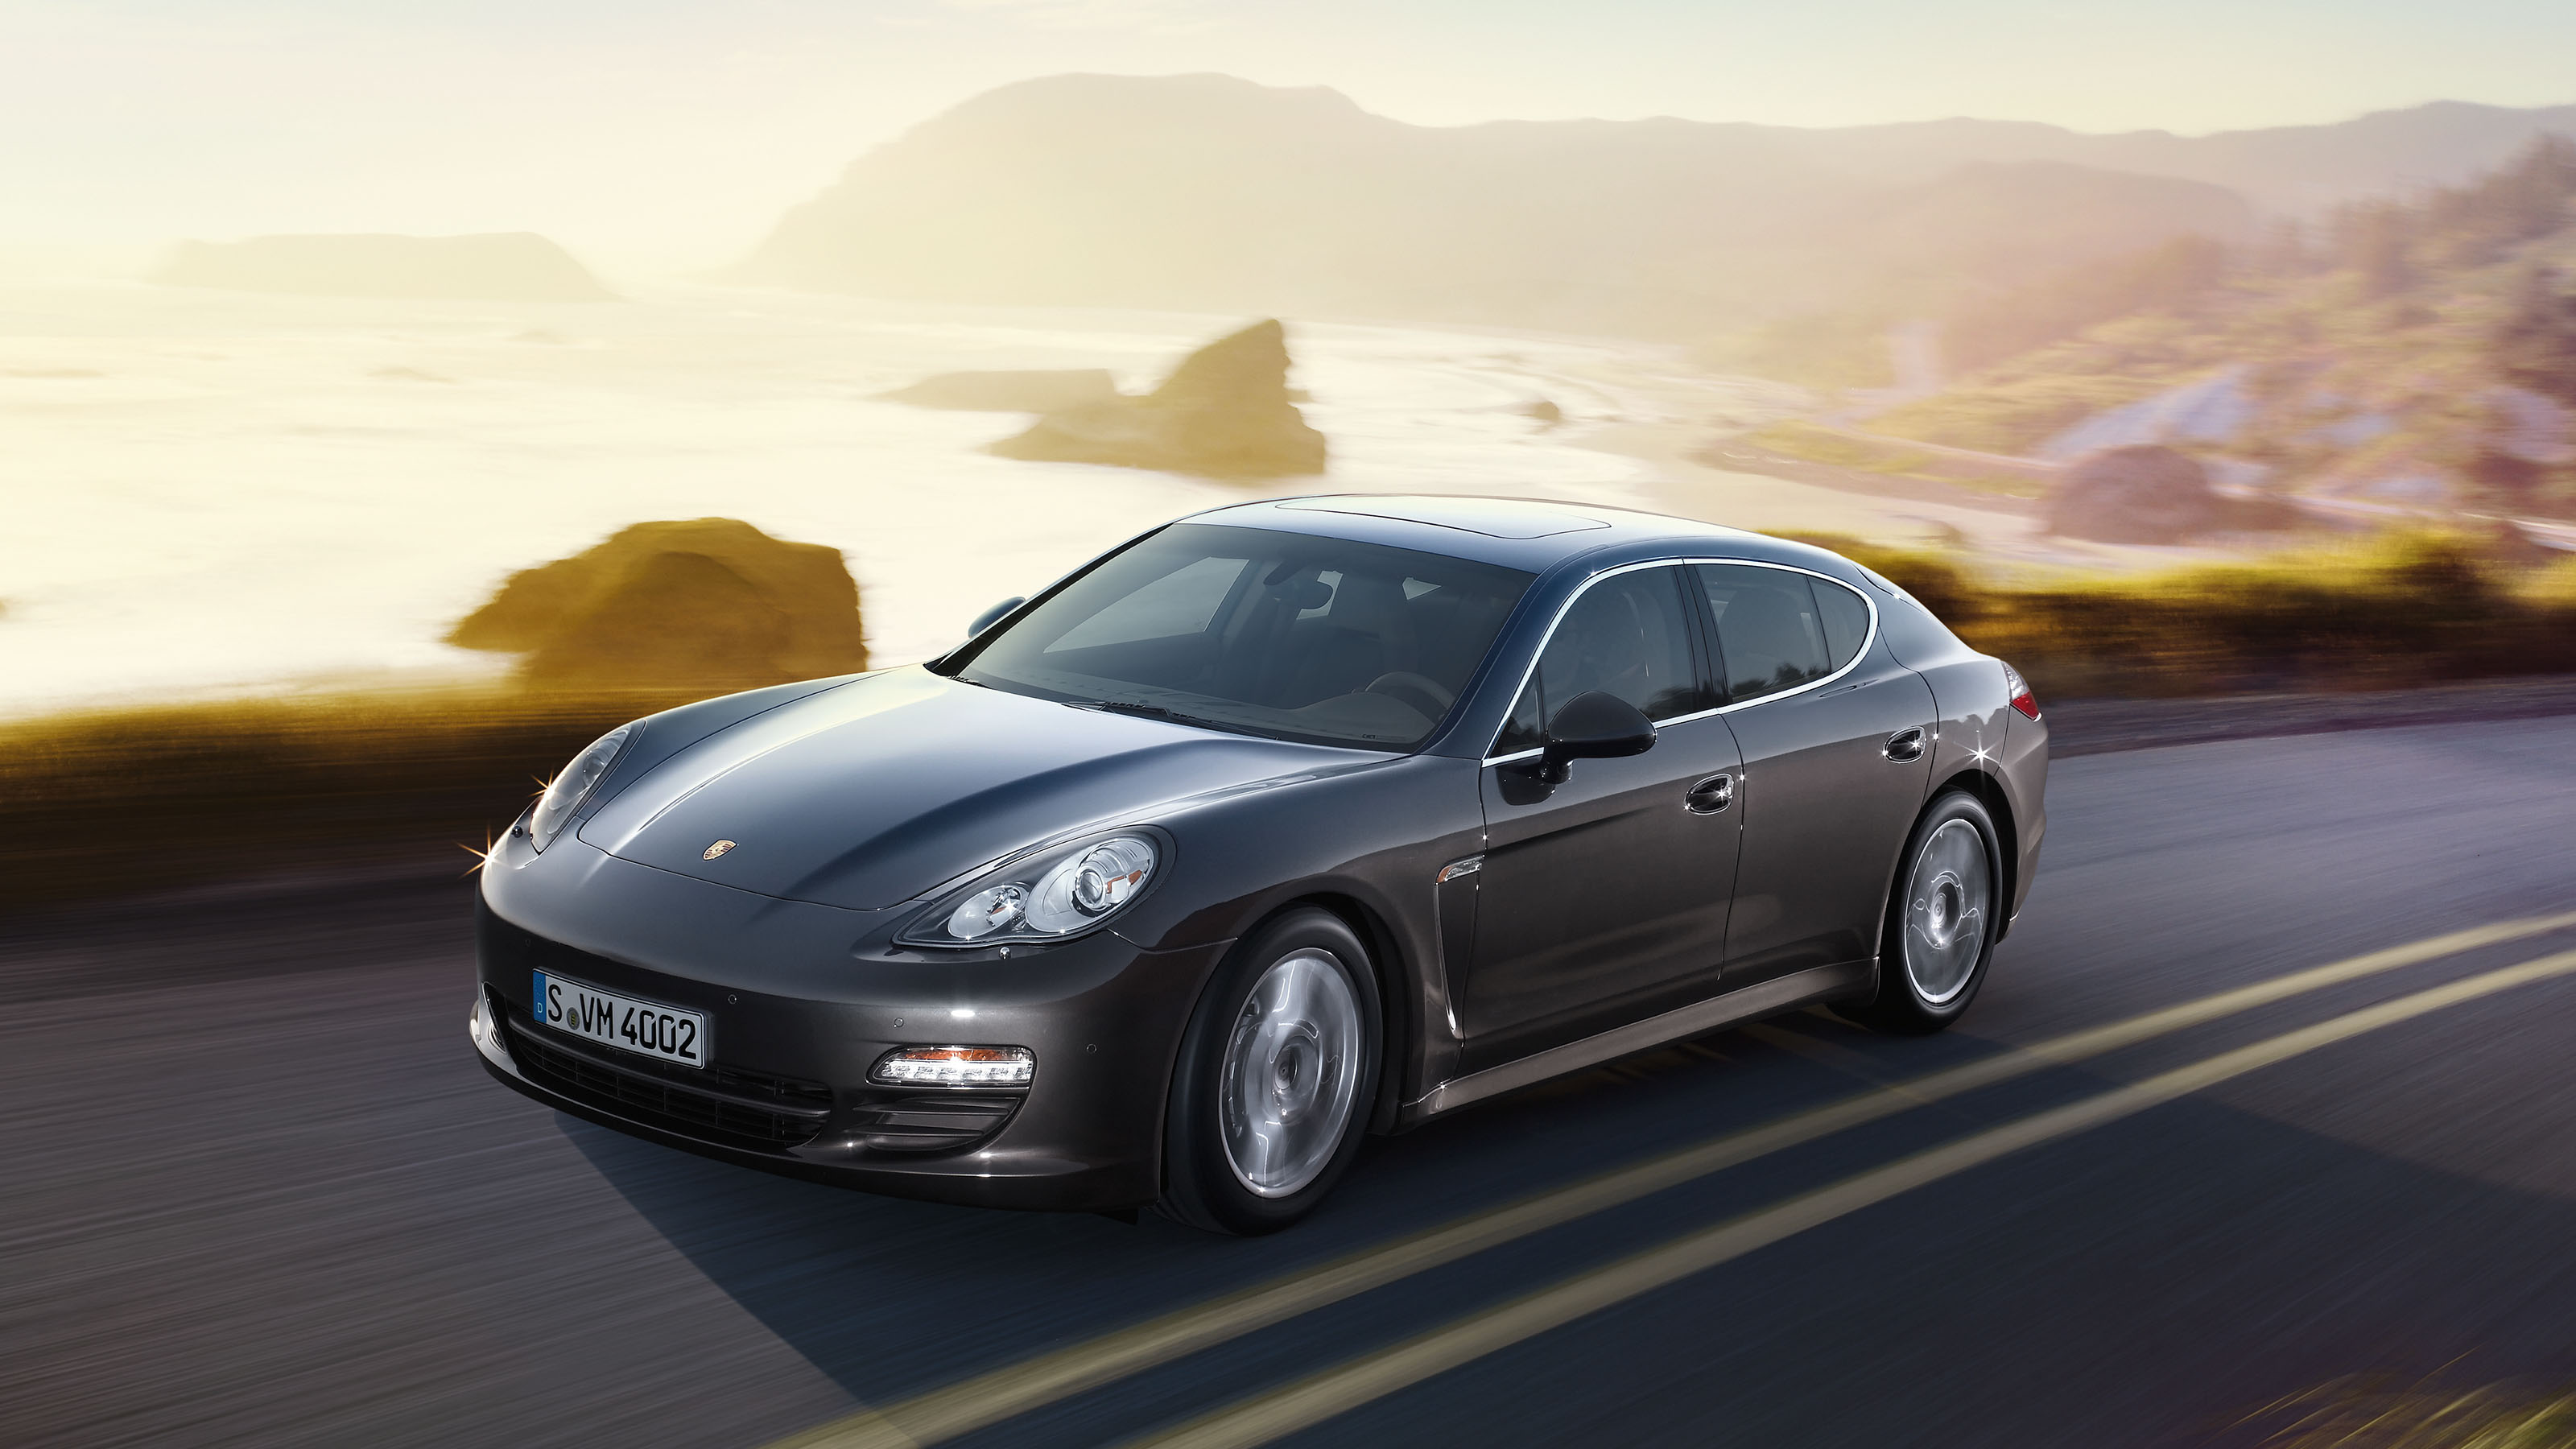 Porsche Approved Certified Pre-owned Program